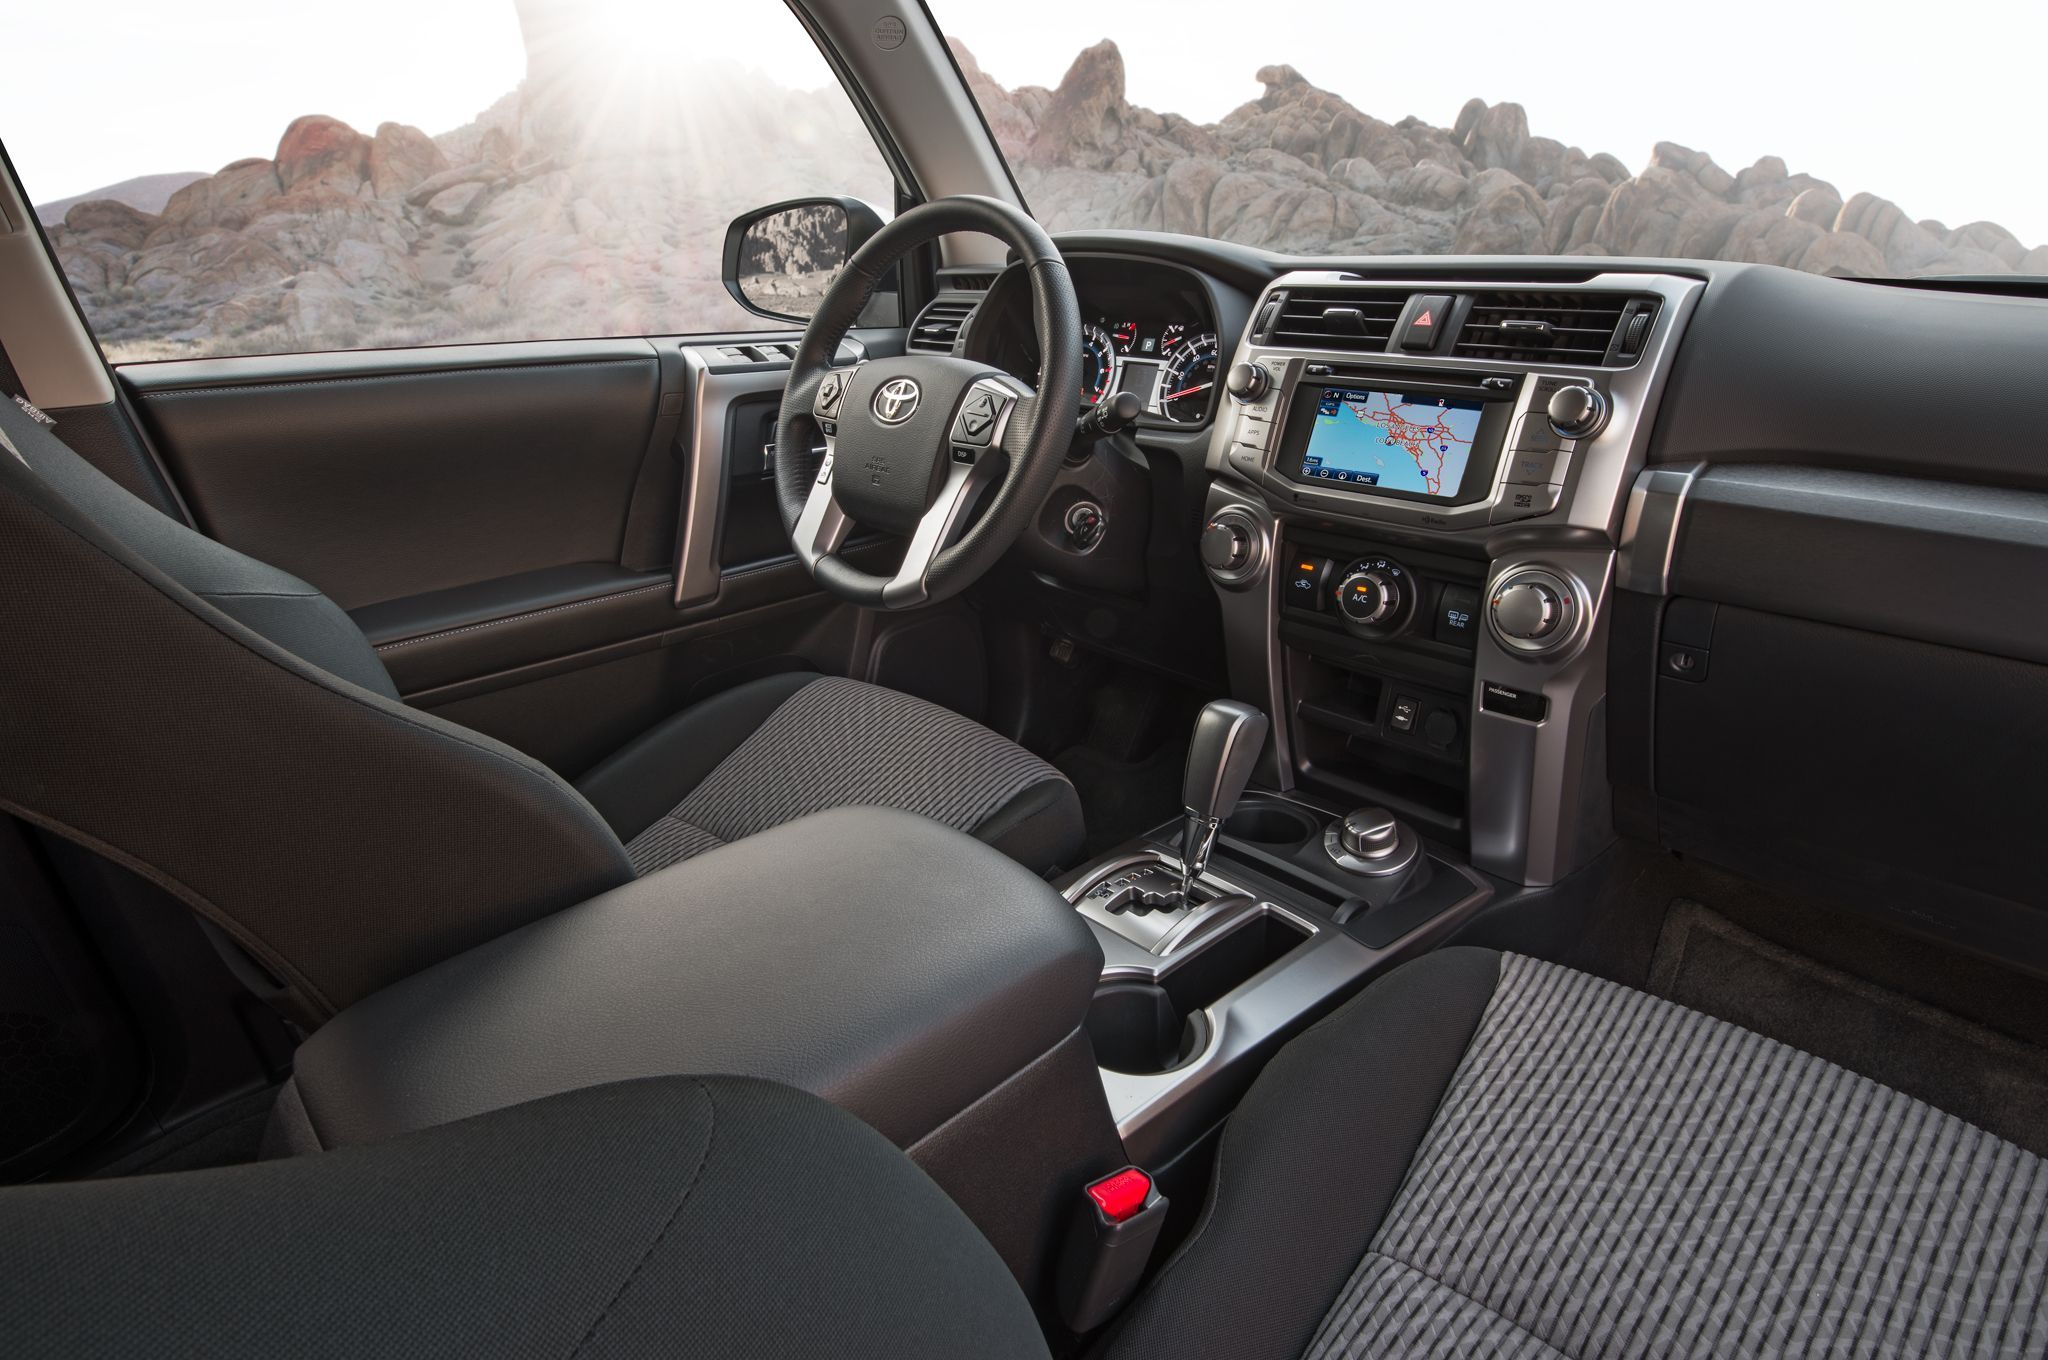 2015 Toyota 4runner Sr5 Premium Interior Car Picture Galleries A Few Of My Favorite I Mean